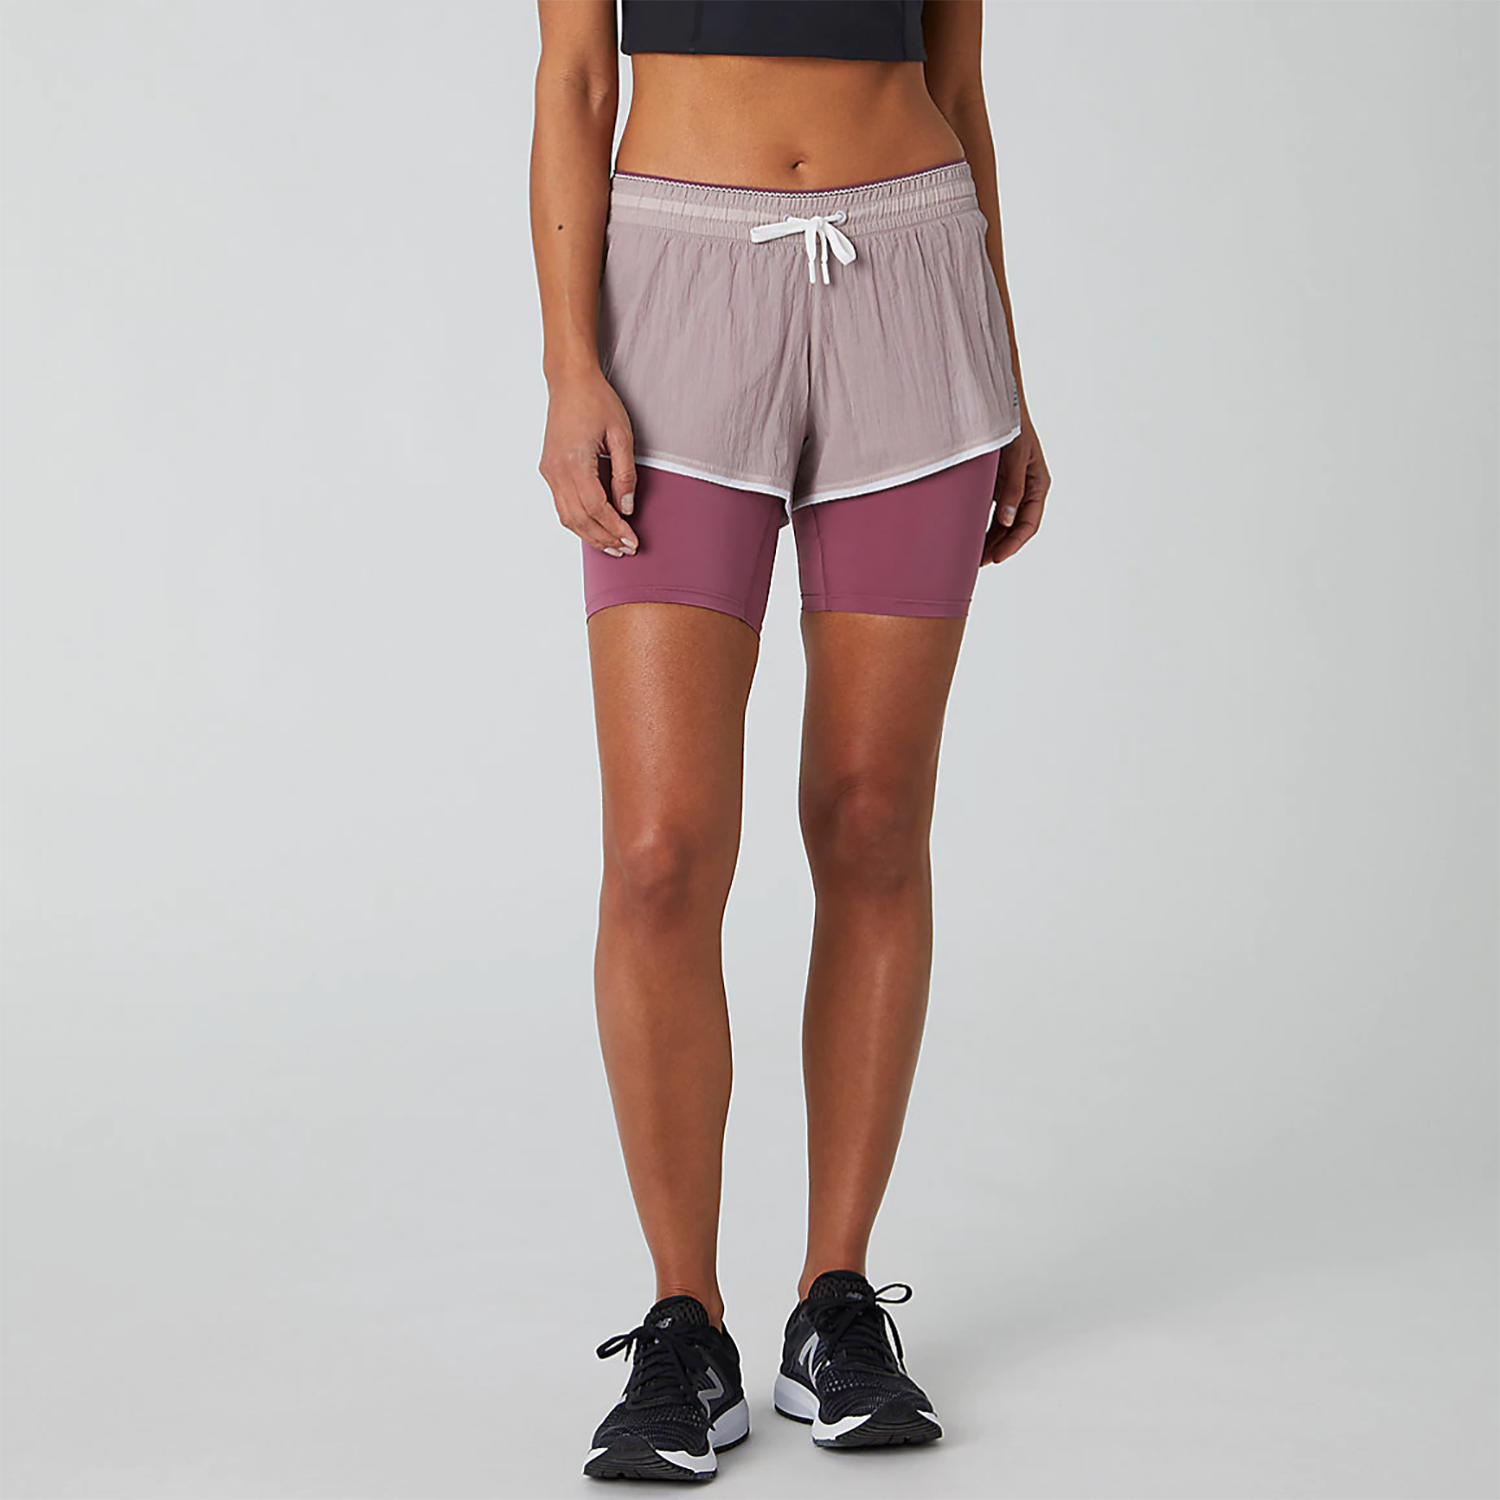 A two-in-one short like thisfrom New Balance gives you the best of both worlds. You get a tighter layer that stays put as you pick up the pace on a run, sneak in some side shuffles, or move in many directions during plyometric moves. On top, the flowy, loose-fitting layer keeps you covered while still allowing for breathability, flexibility, and moisture-wicking material.